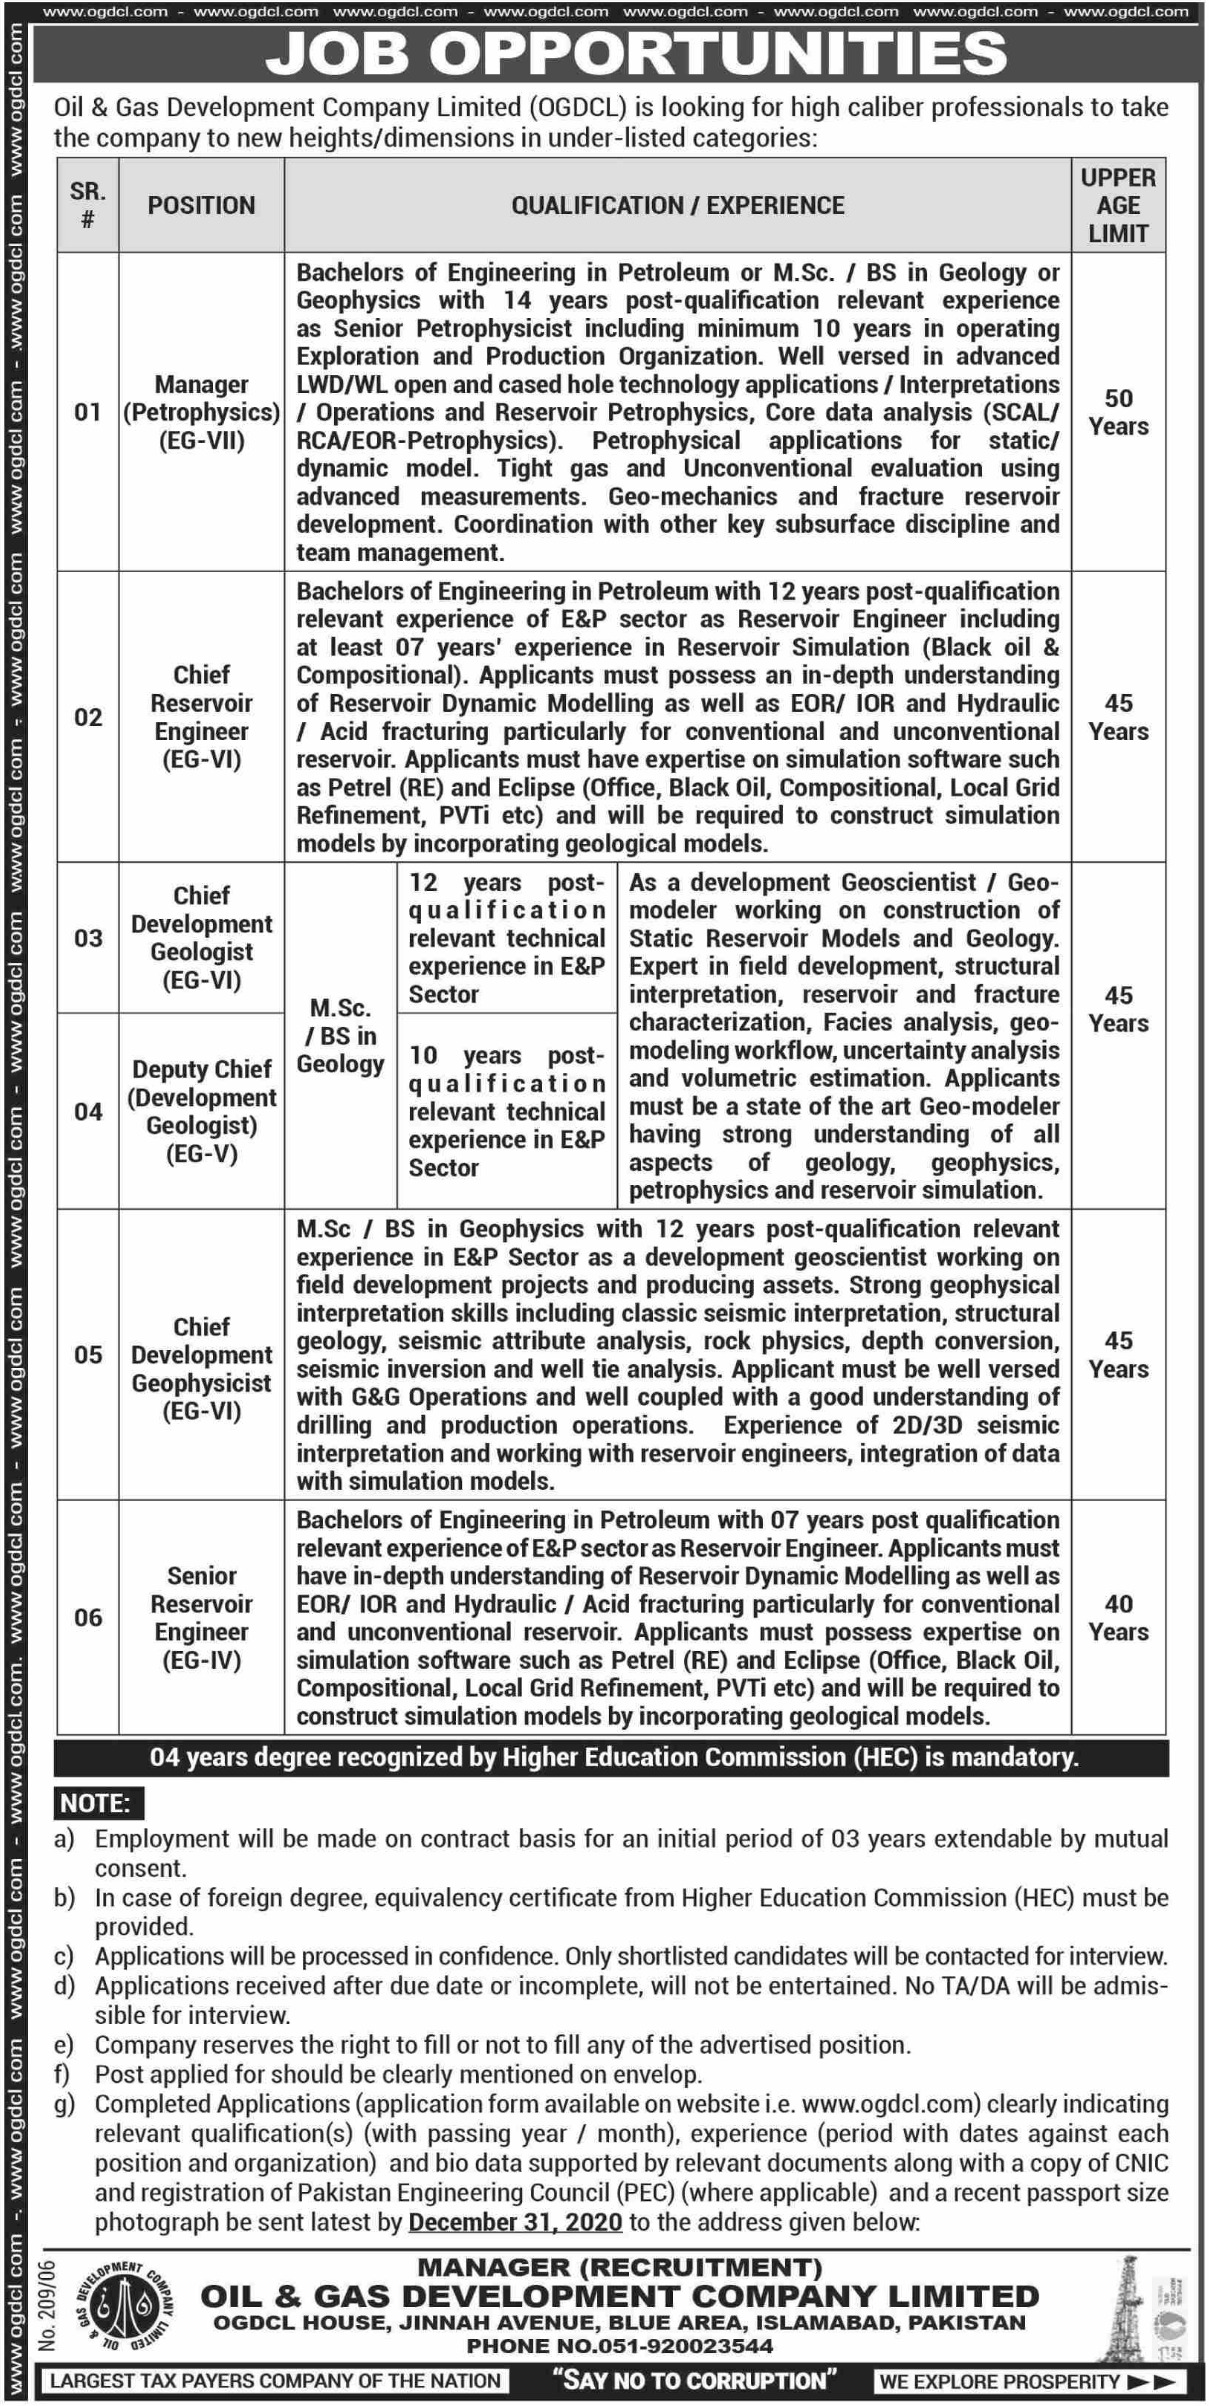 Oil & Gas Development Company Limited OGDCL Jobs December 2020